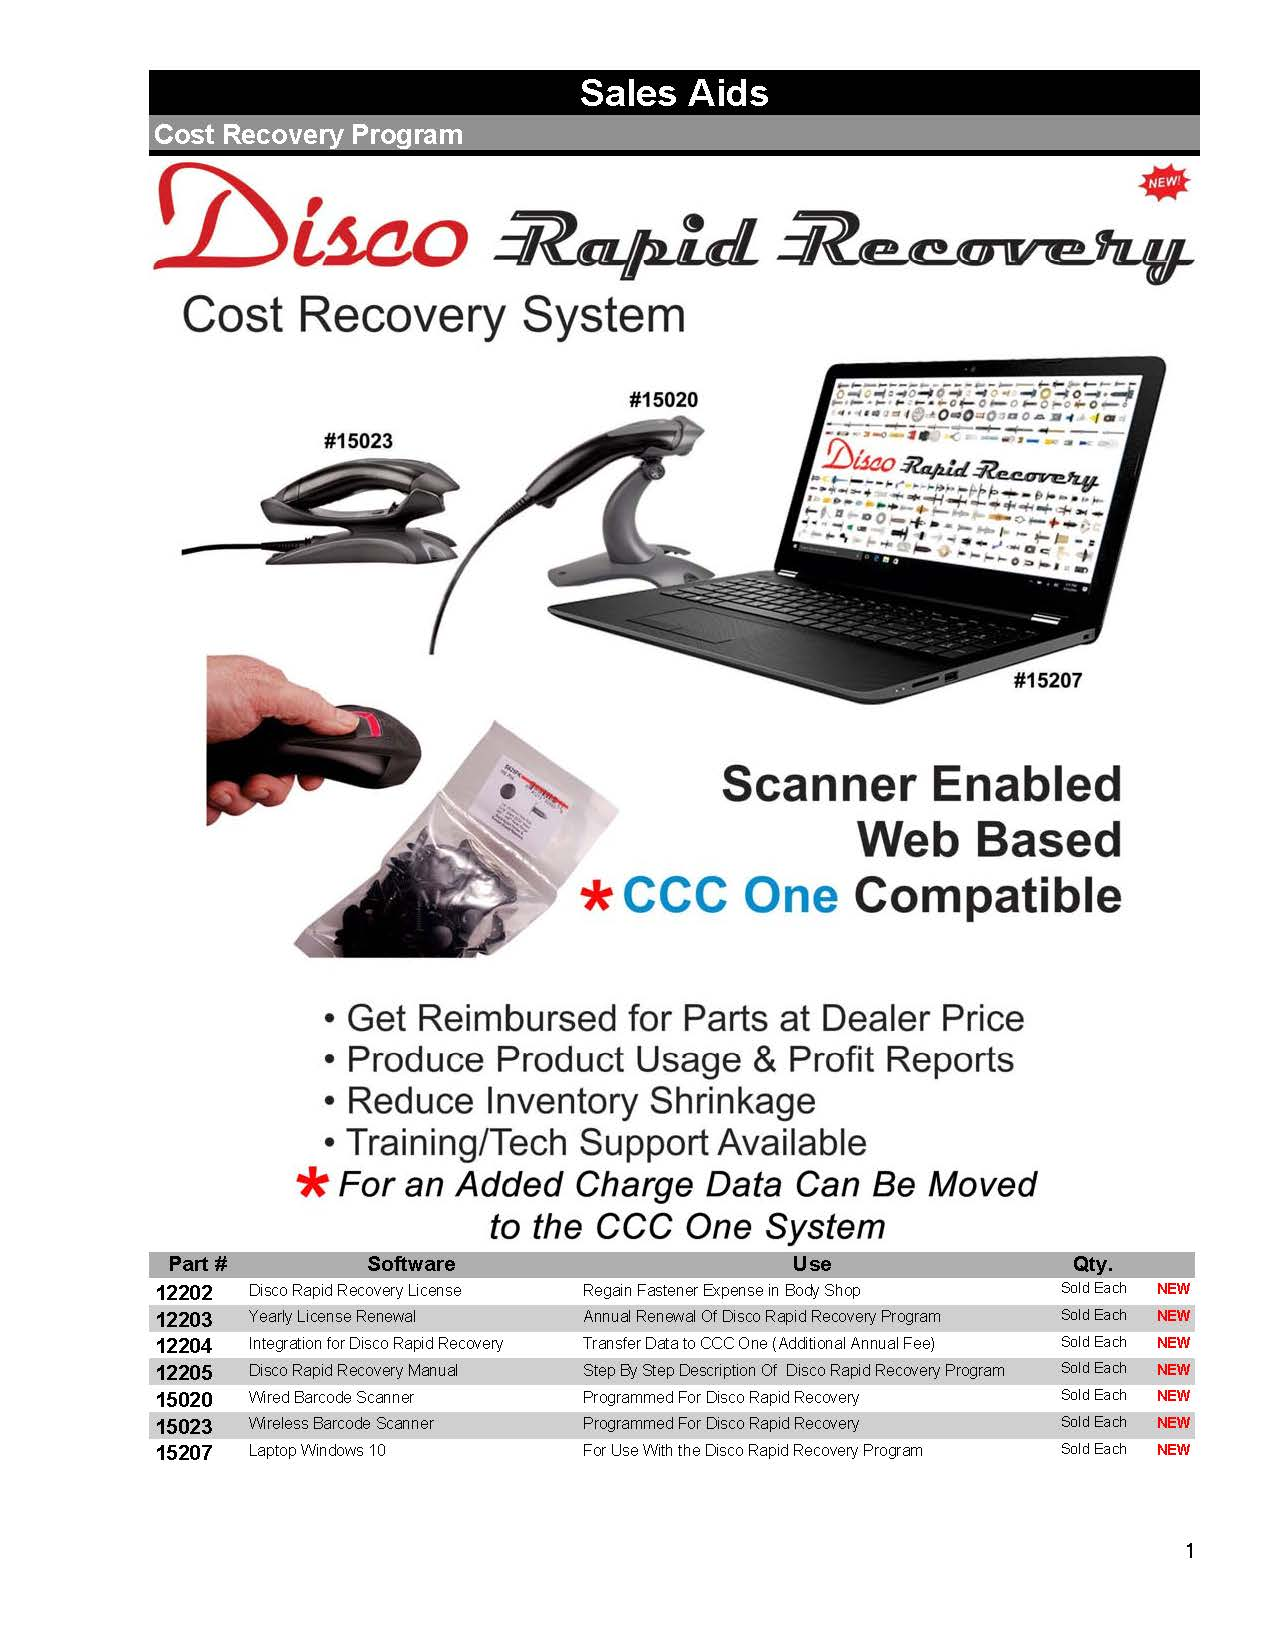 Disco-Rapid-Recovery-System